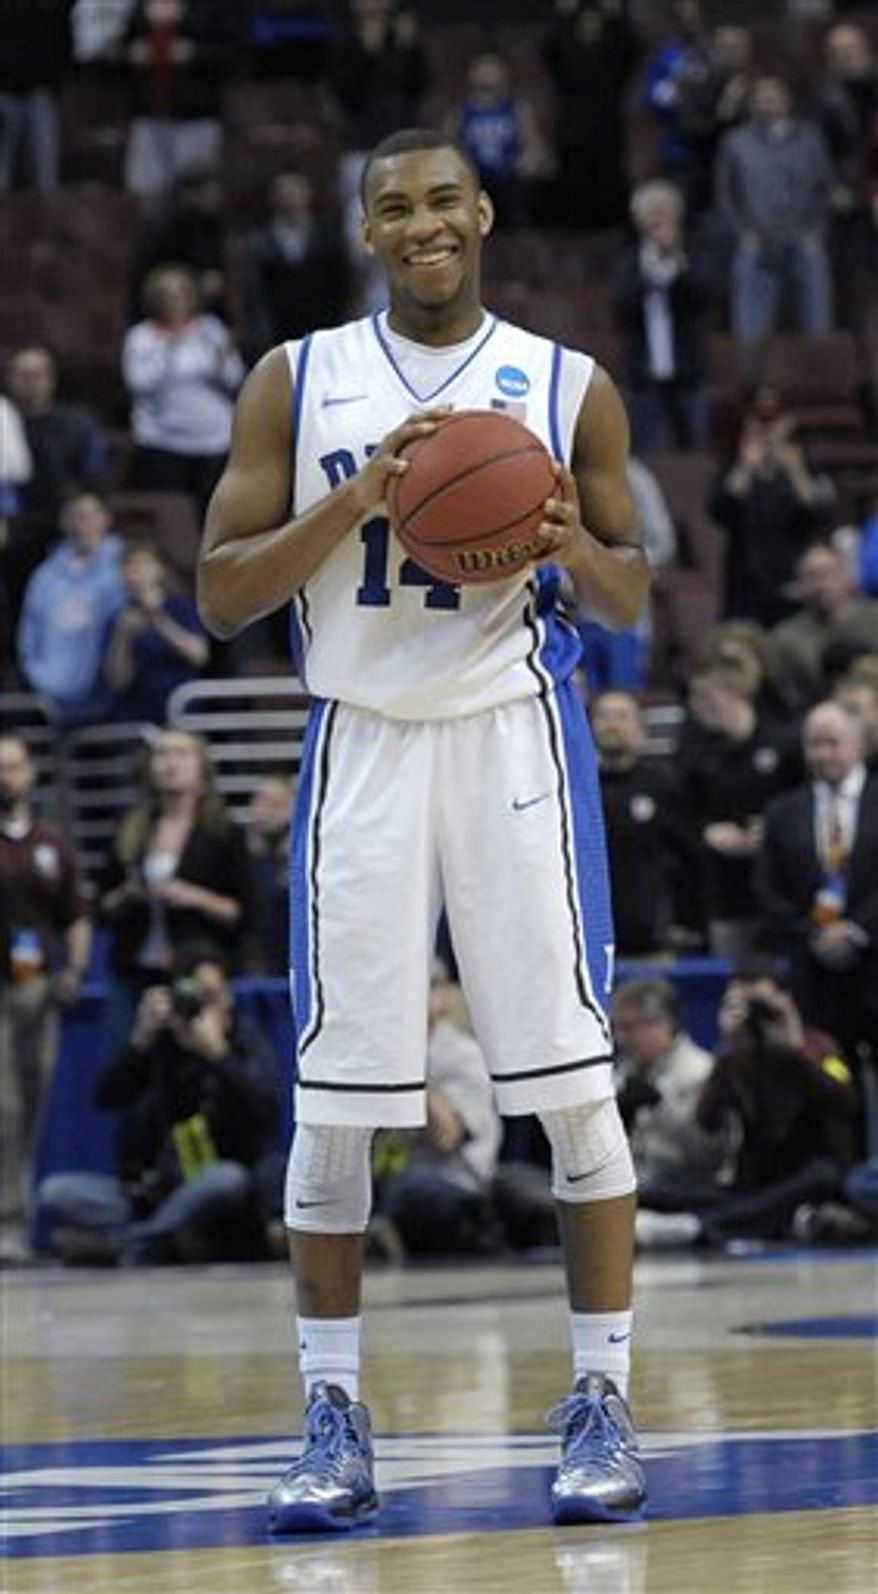 **FILE** Duke's Rasheed Sulaimon holds the ball during the second half of a third-round game of the NCAA college basketball tournament against Creighton, Monday, March 25, 2013, in Philadelphia. Duke won 66-50. (AP Photo/Michael Perez)